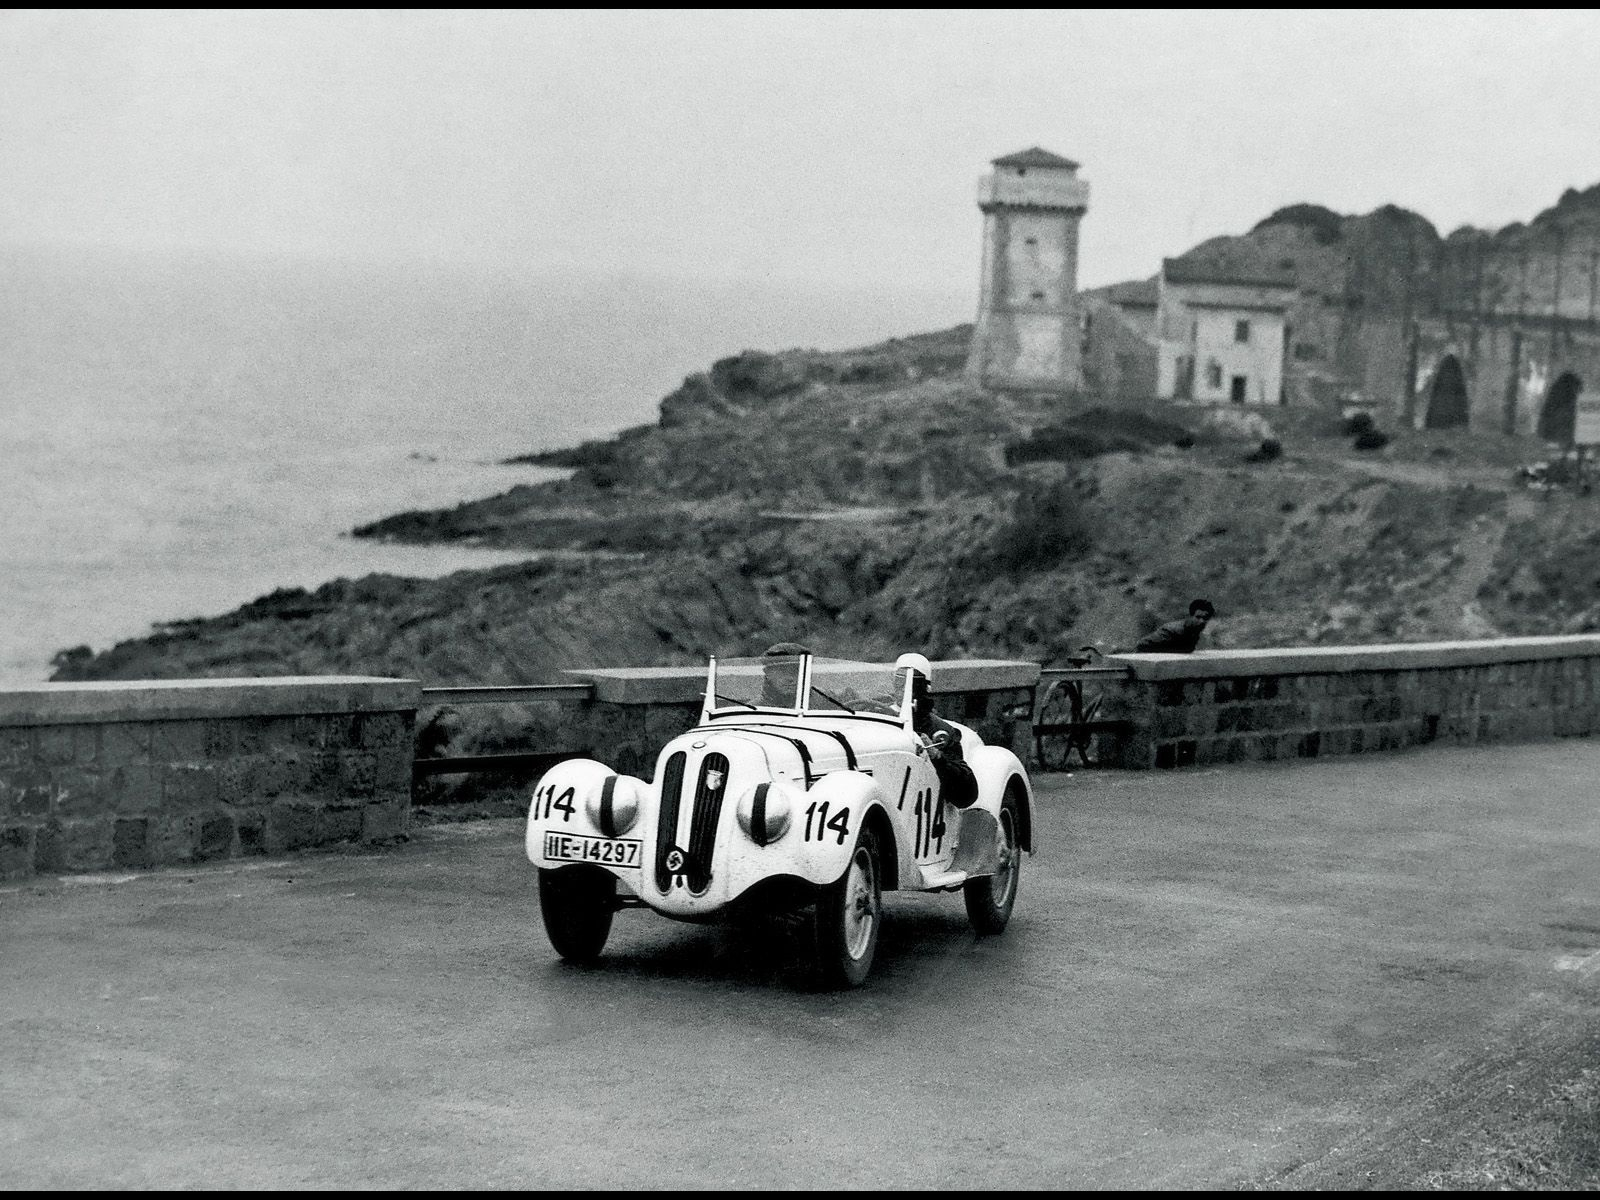 1938. 3This BMW 328, #114, managed an impressive 12th place.   Bmw, Sports car racing, Classic ...